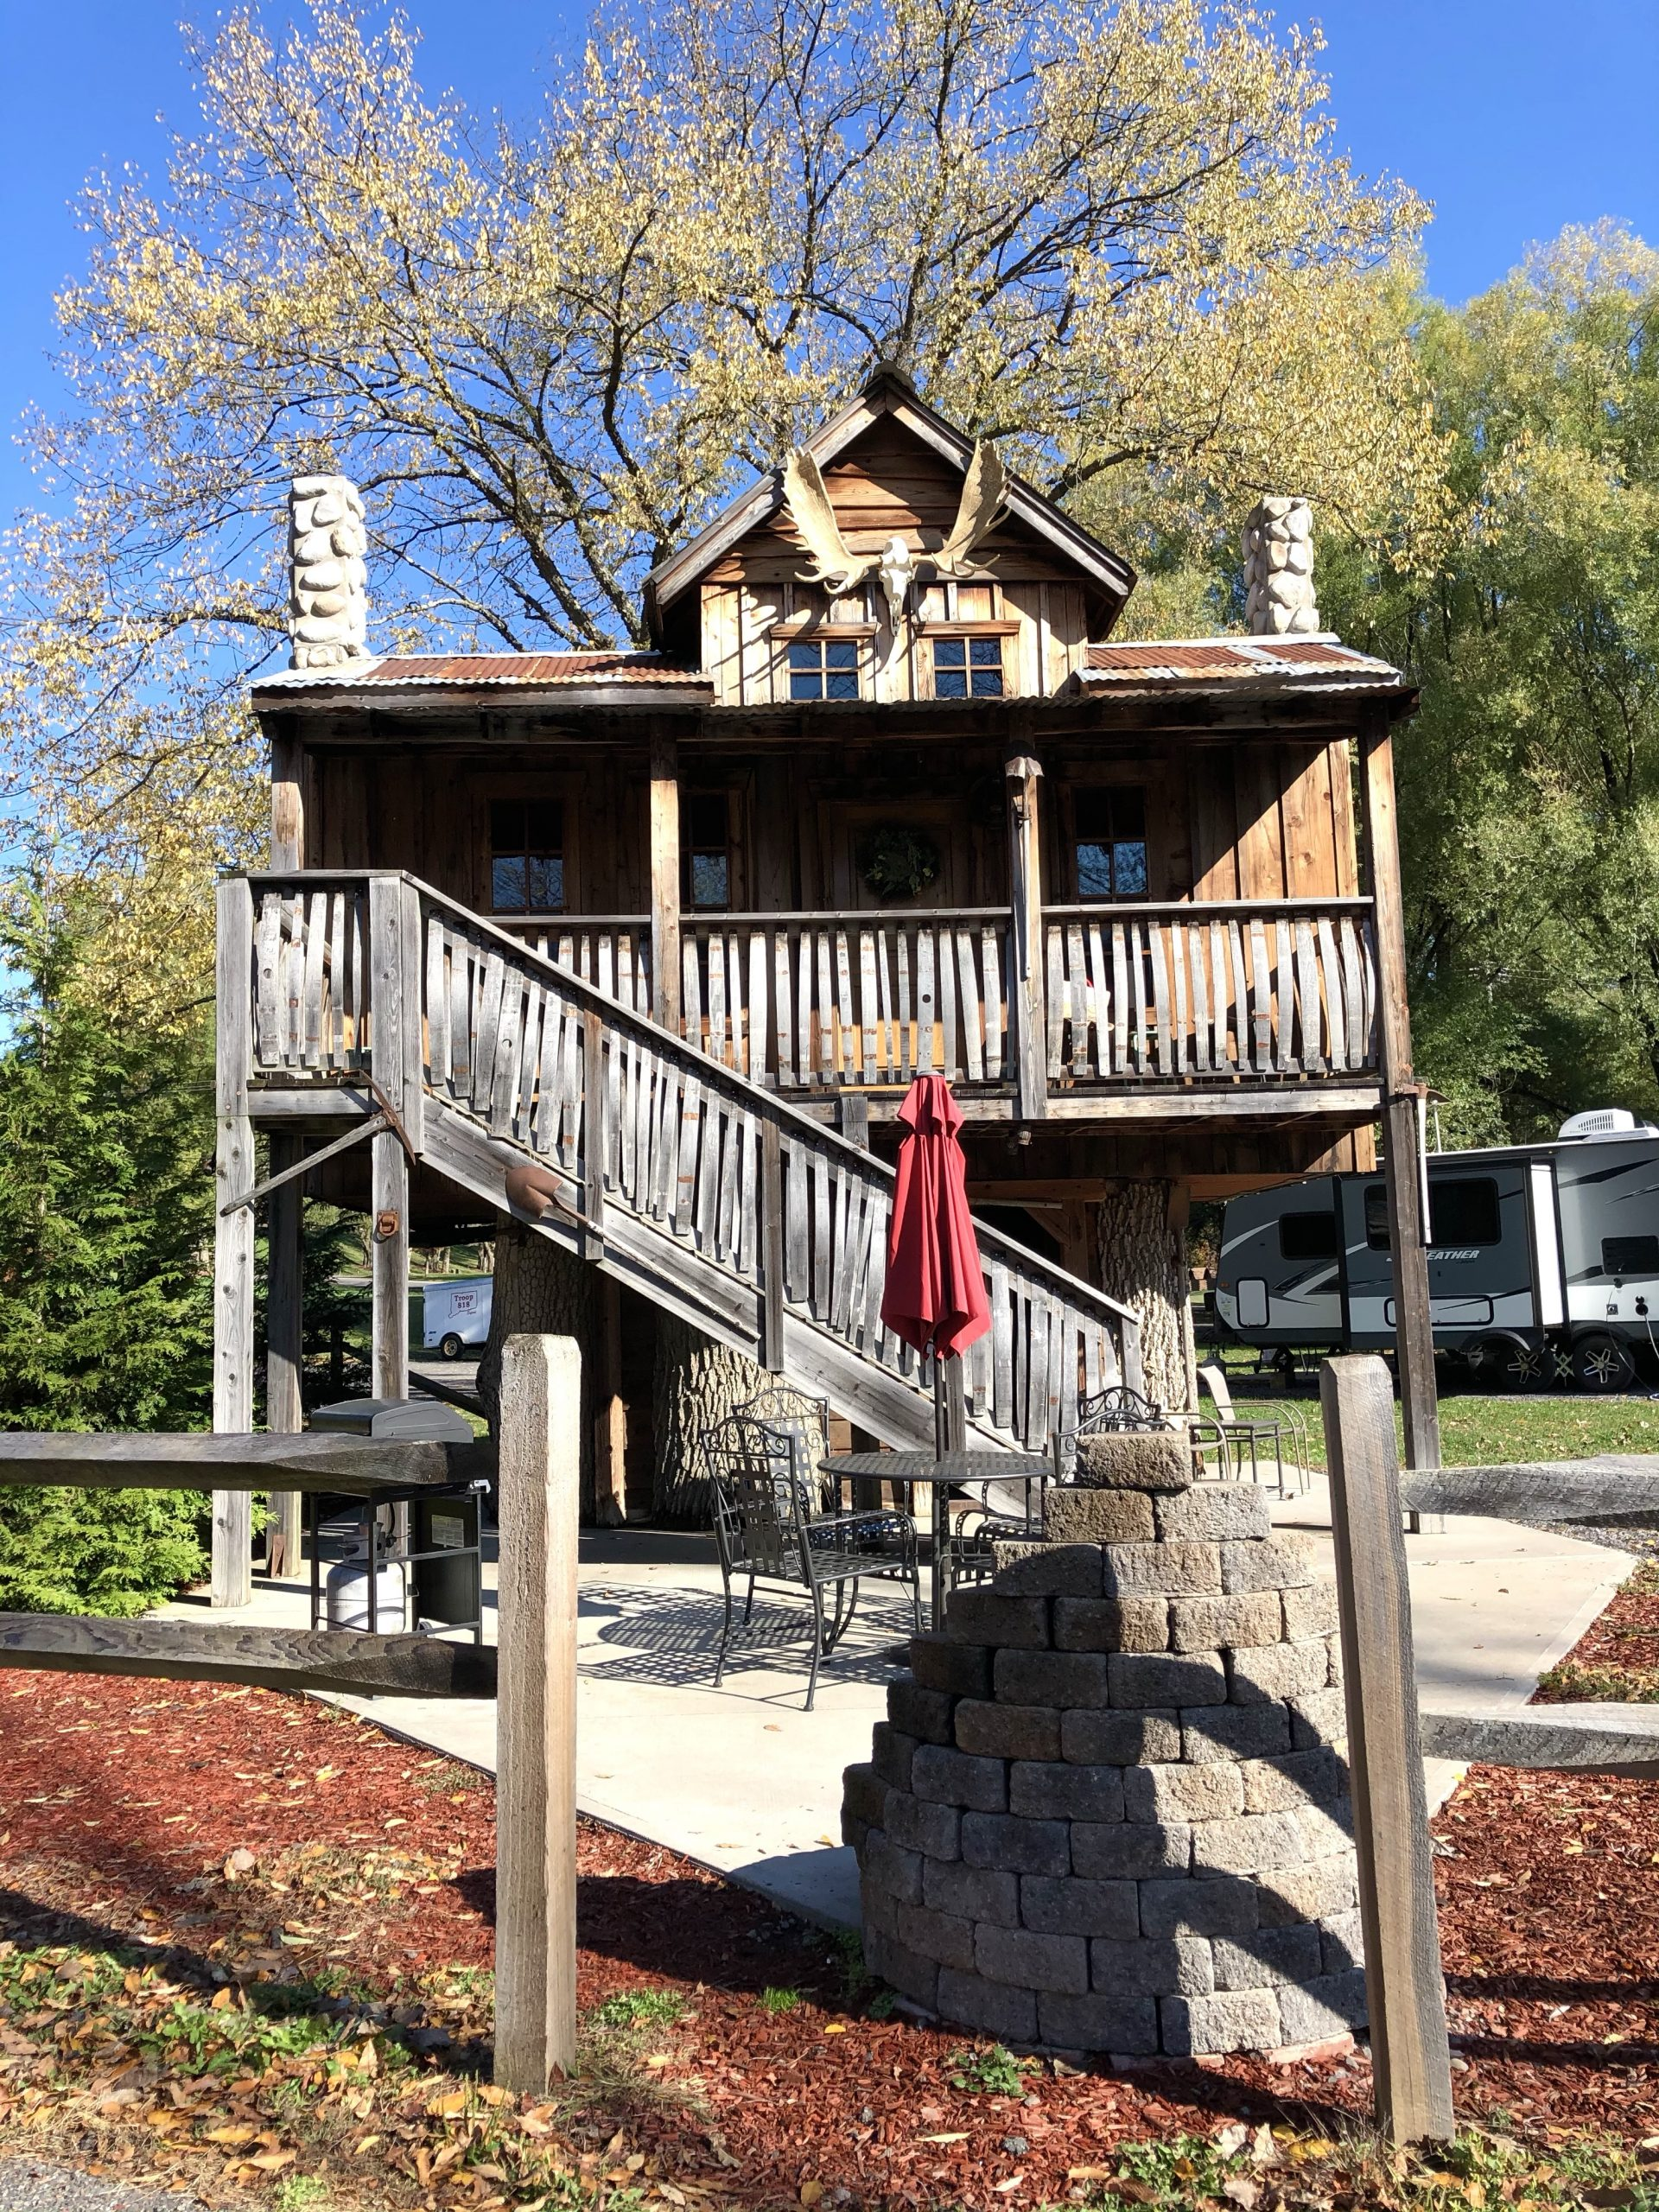 Treehouse at Herkimer Diamond Mines KOA